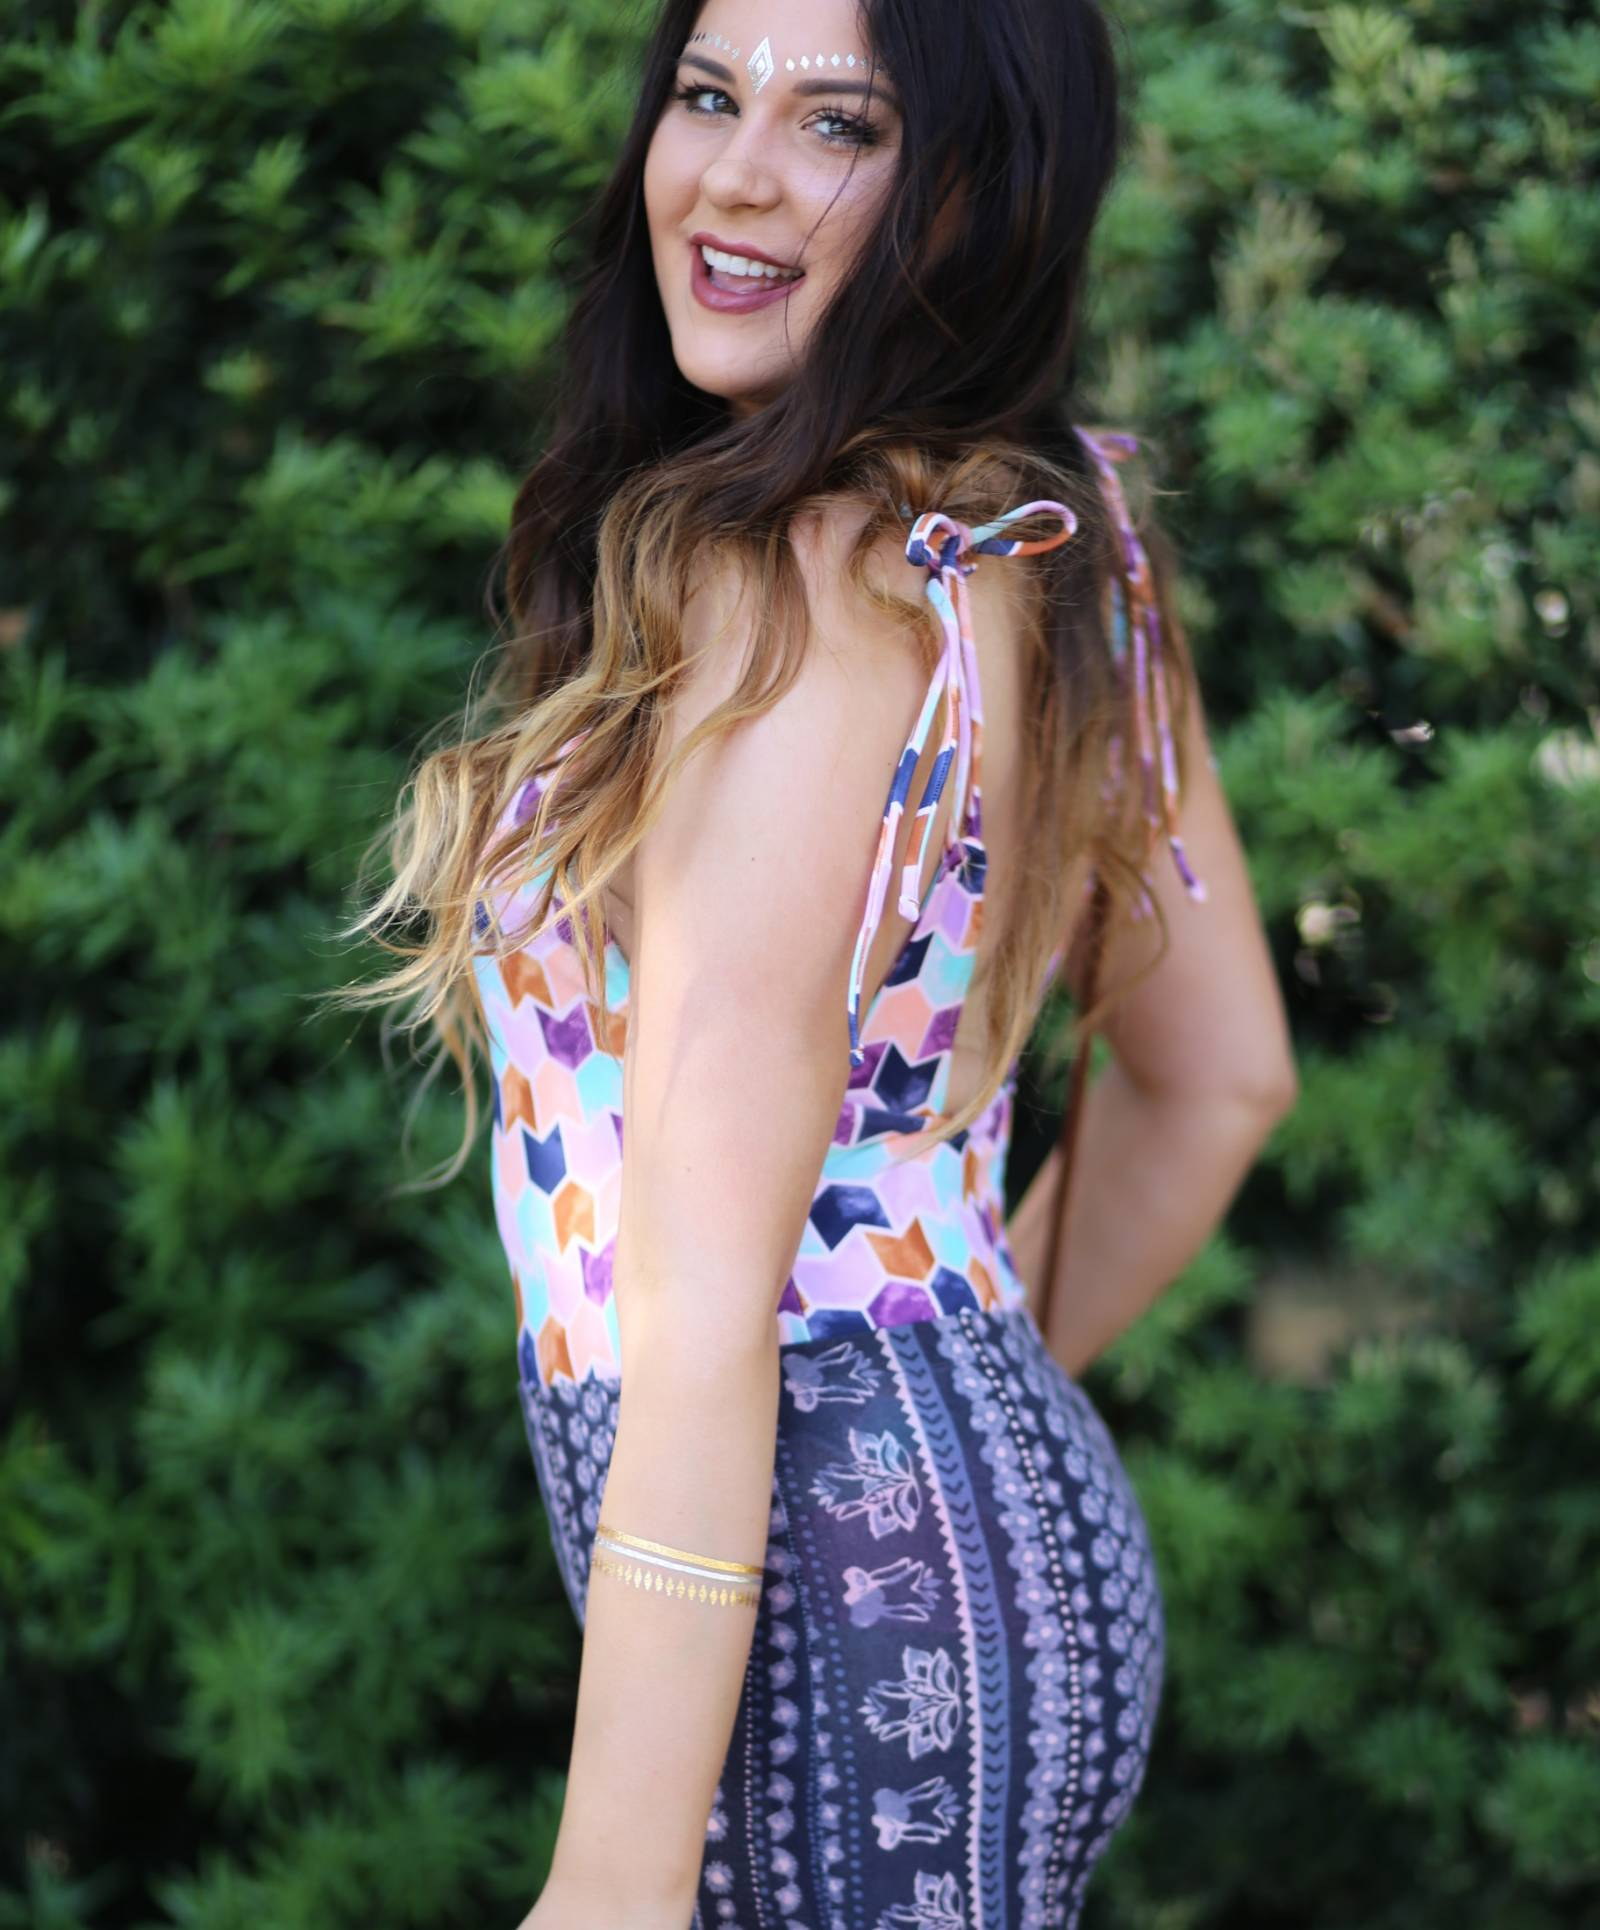 how to wear a one piece bathing suit | festival outfit ideas | Target | Target fashion | beauty blogger Mash Elle | boho style | festival outfits | festival style coachella outfit ideas